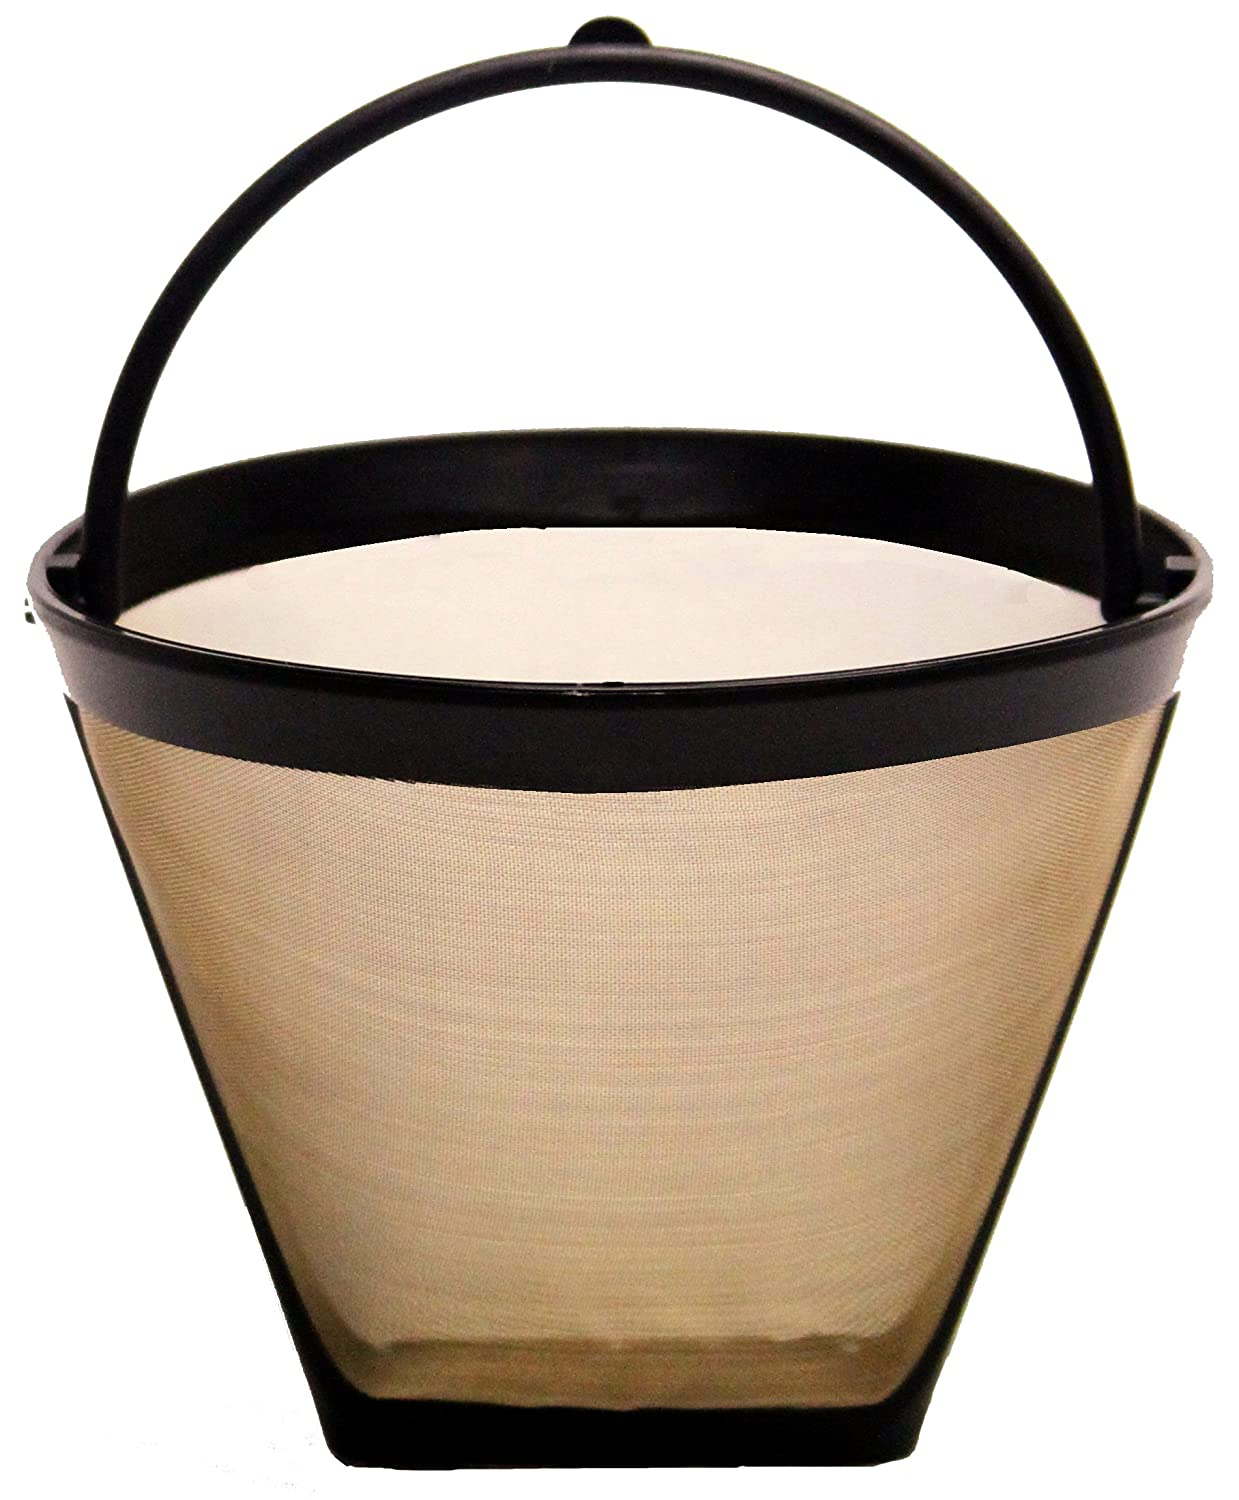 THE ORIGINAL GOLDTONE BRAND Reusable Cone-style #2 4-8 Cup Coffee Filter with Handle